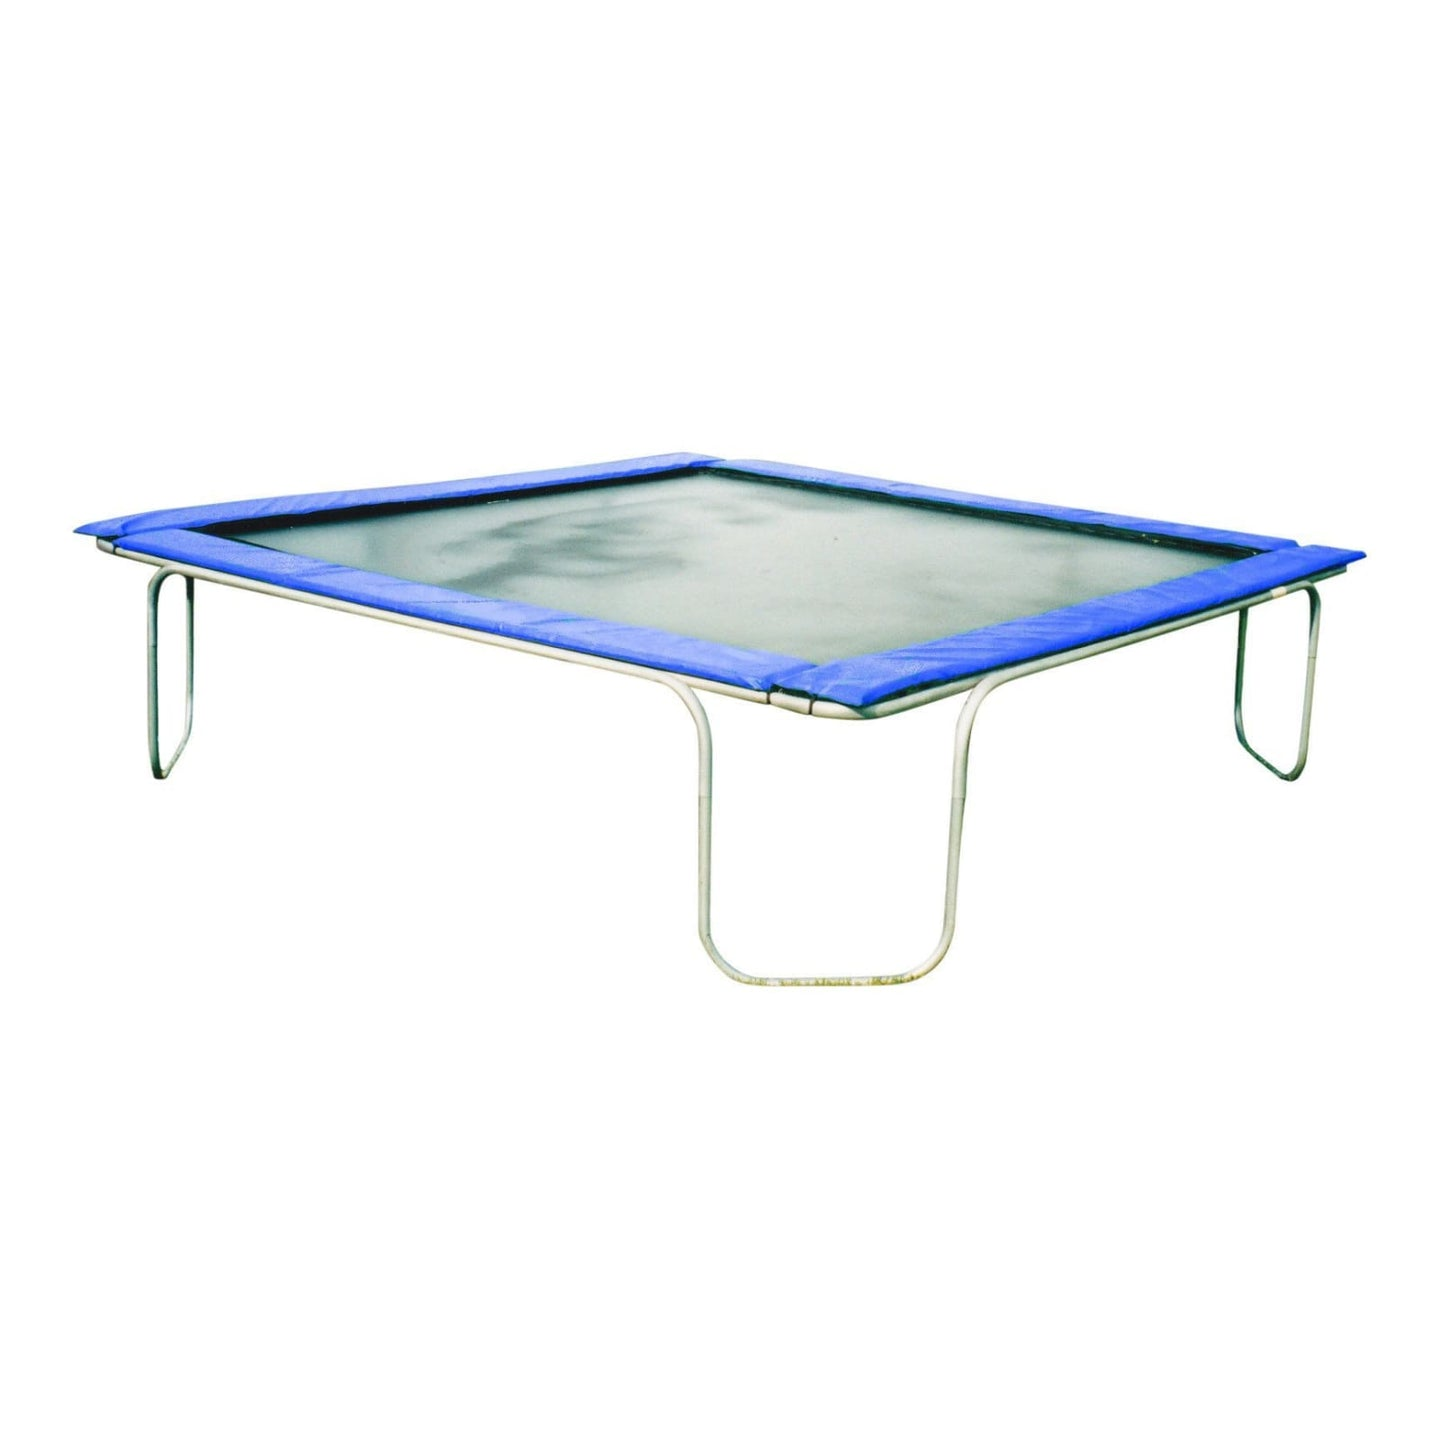 Texas Trampoline Heavy Duty Square Trampoline 15 x 15 ft Texas Giant - Square Trampolines